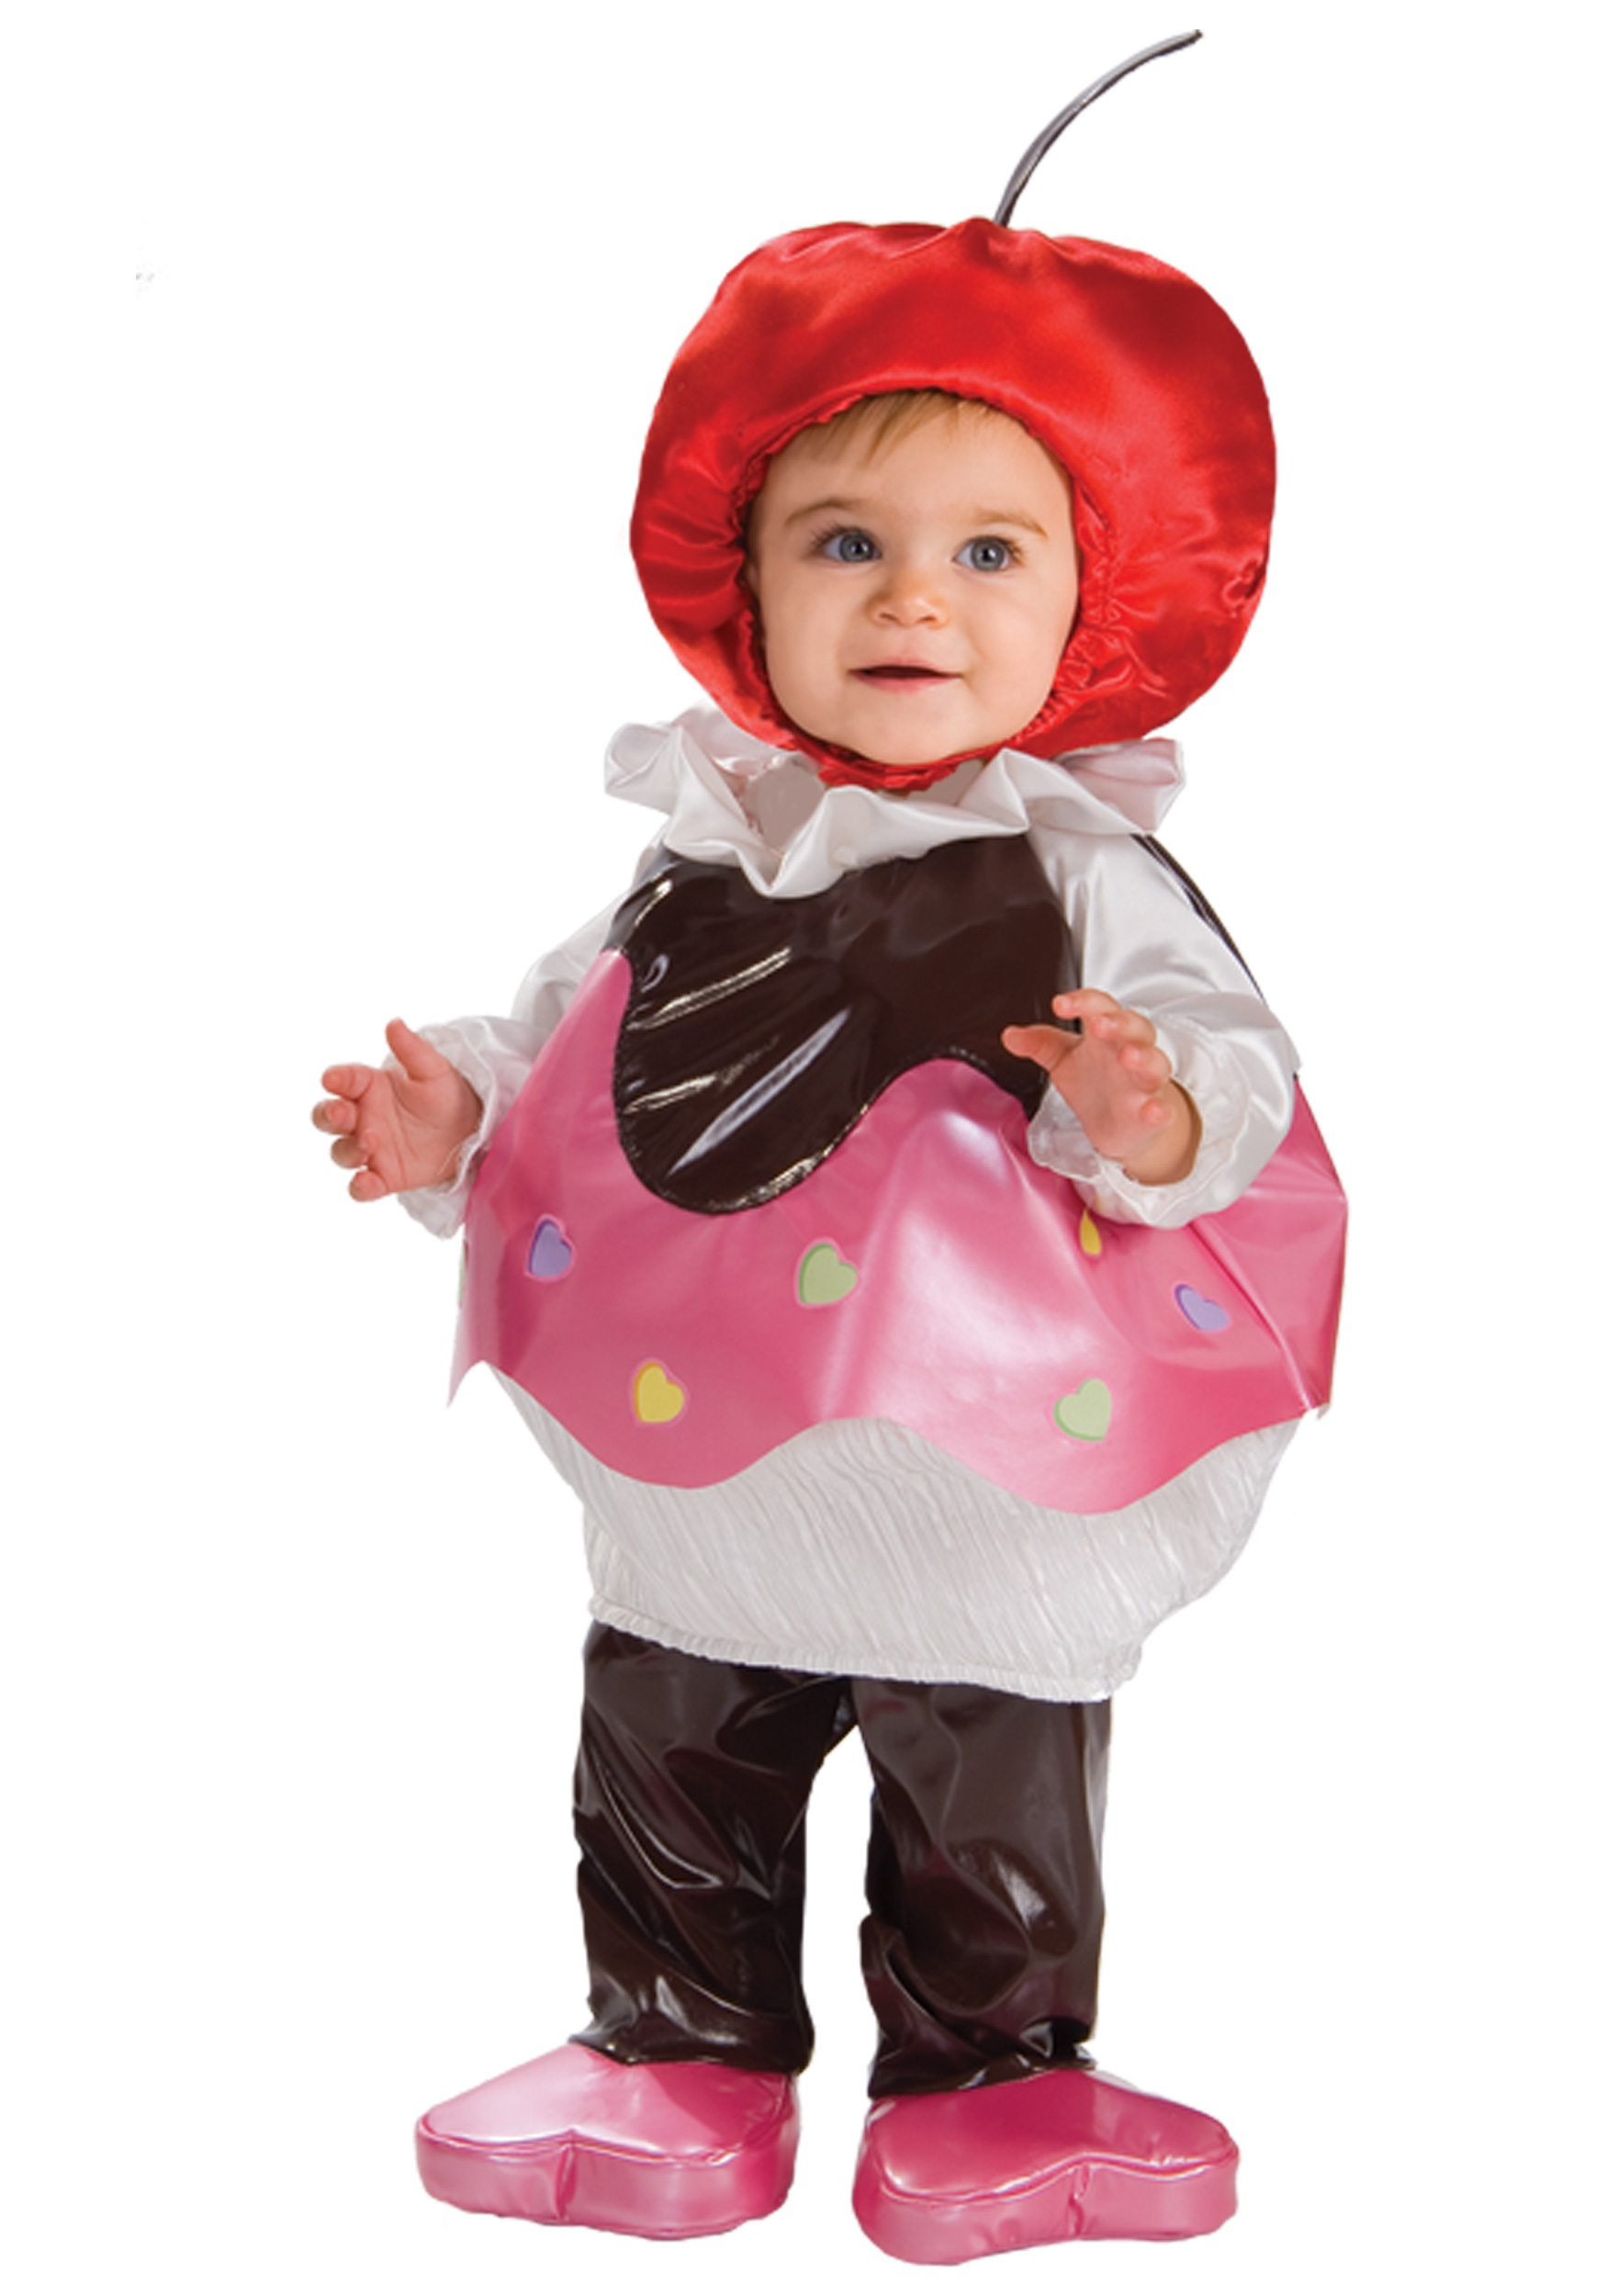 Toddler Sweetheart Cupcake Costume  sc 1 st  Halloween Costumes & Toddler Sweetheart Cupcake Costume - Halloween Costumes